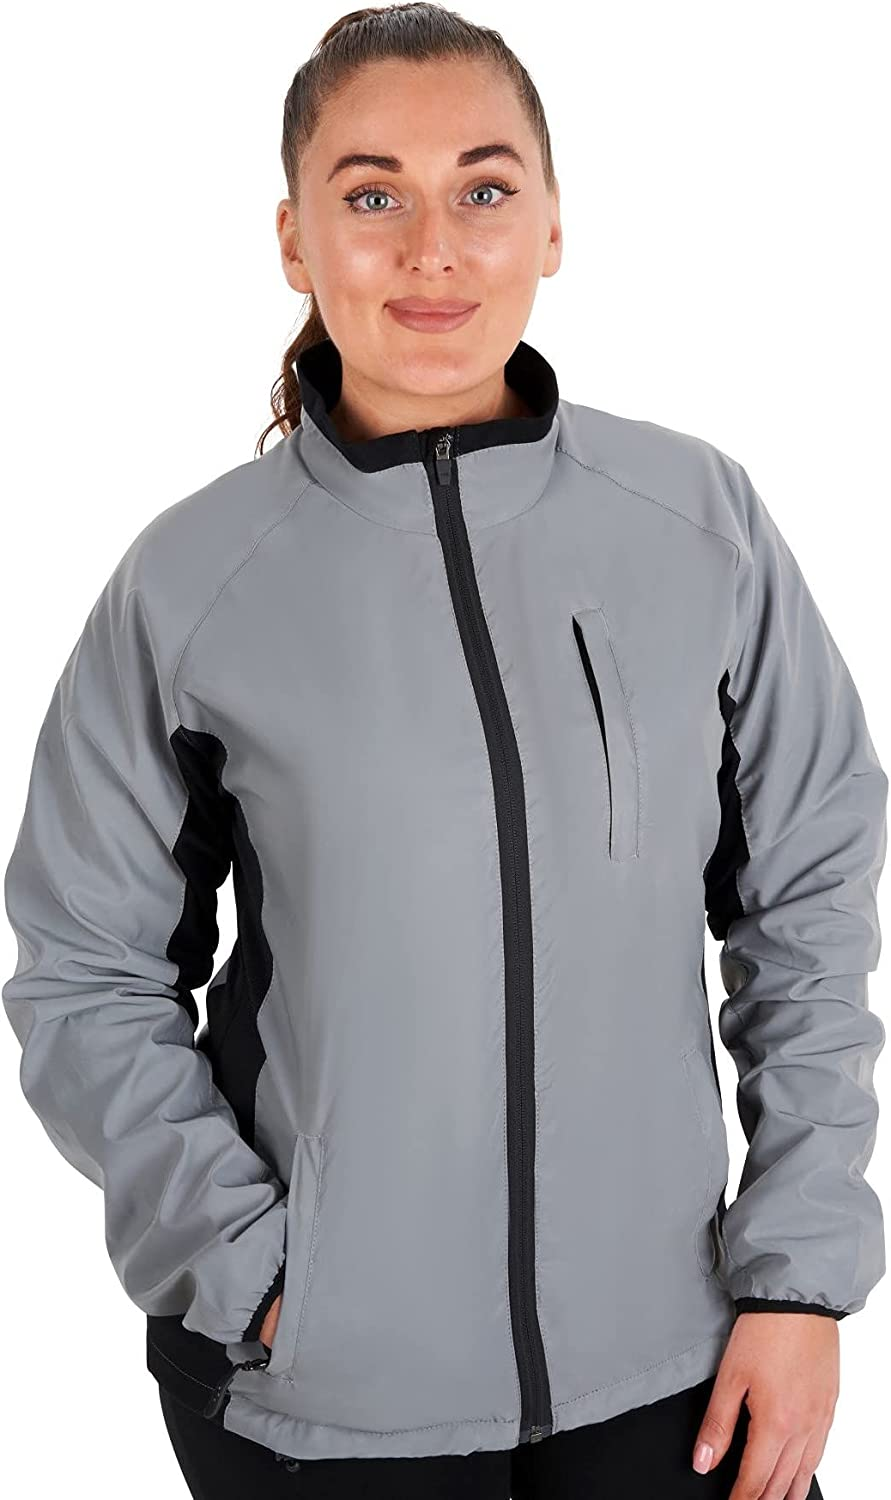 BTR Ladies High Visibility cheap Reflective Cycling Silver and Running quality assurance